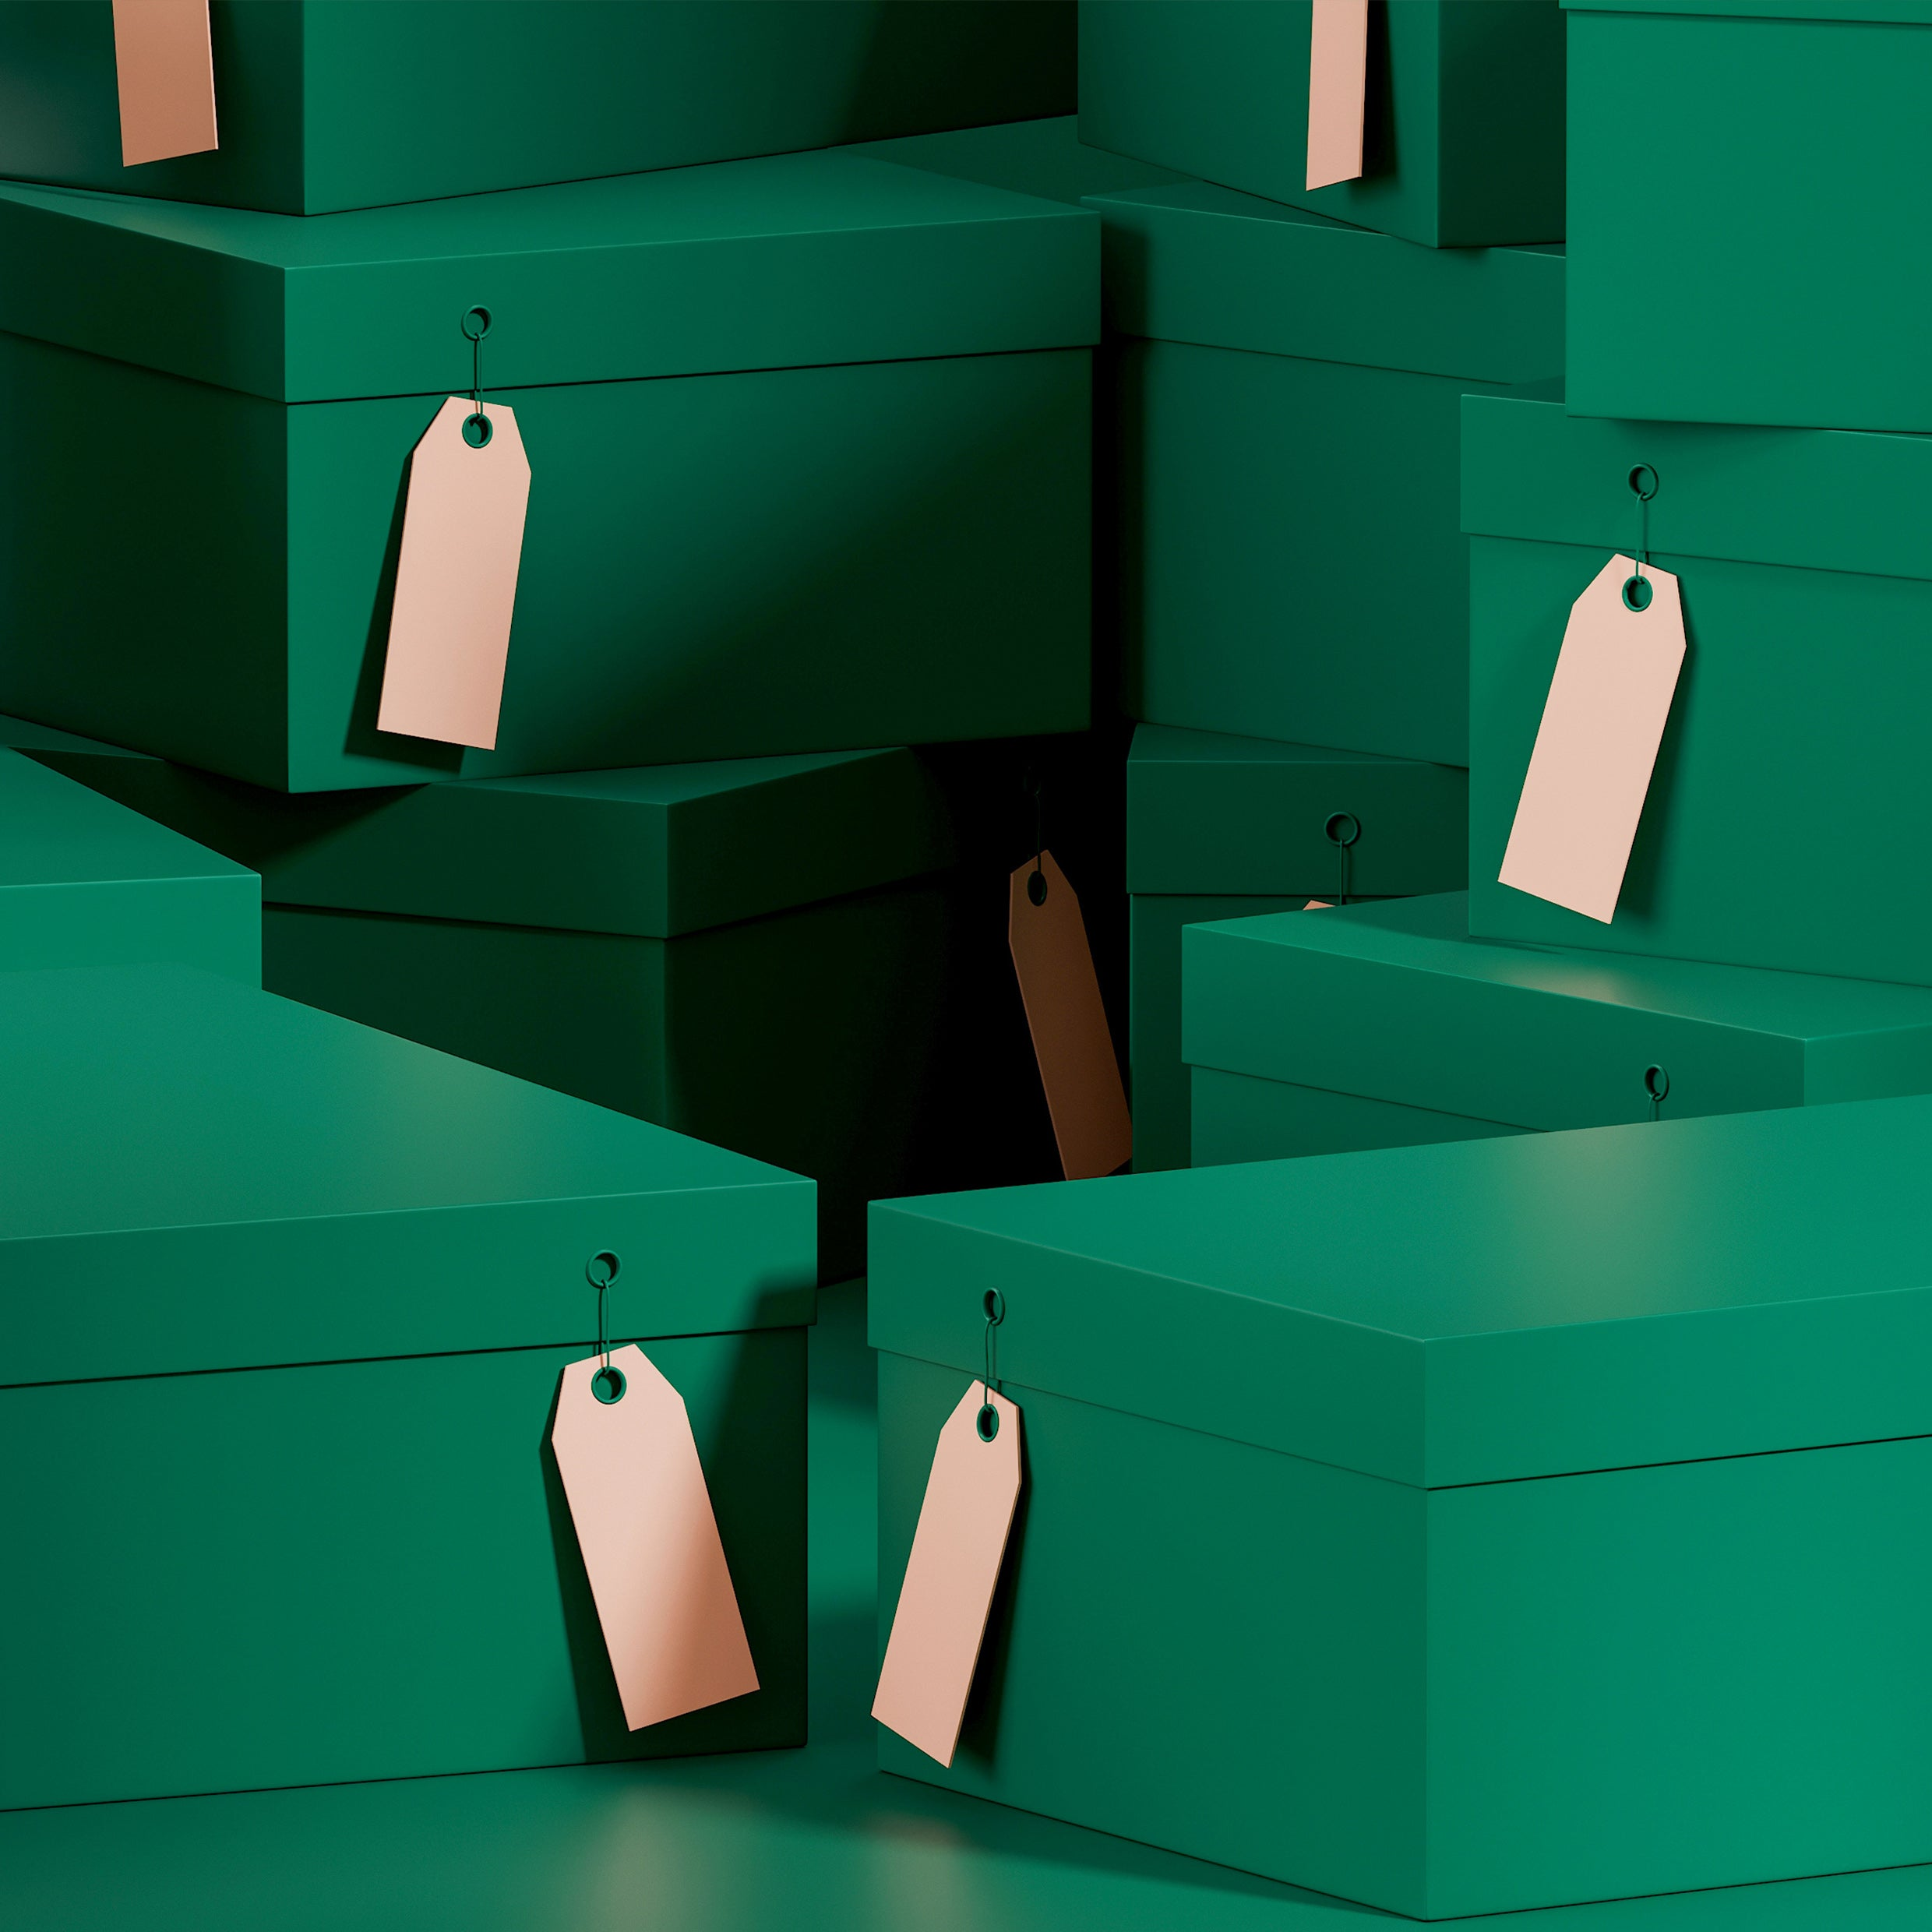 Green shoeboxes with brown swing tags